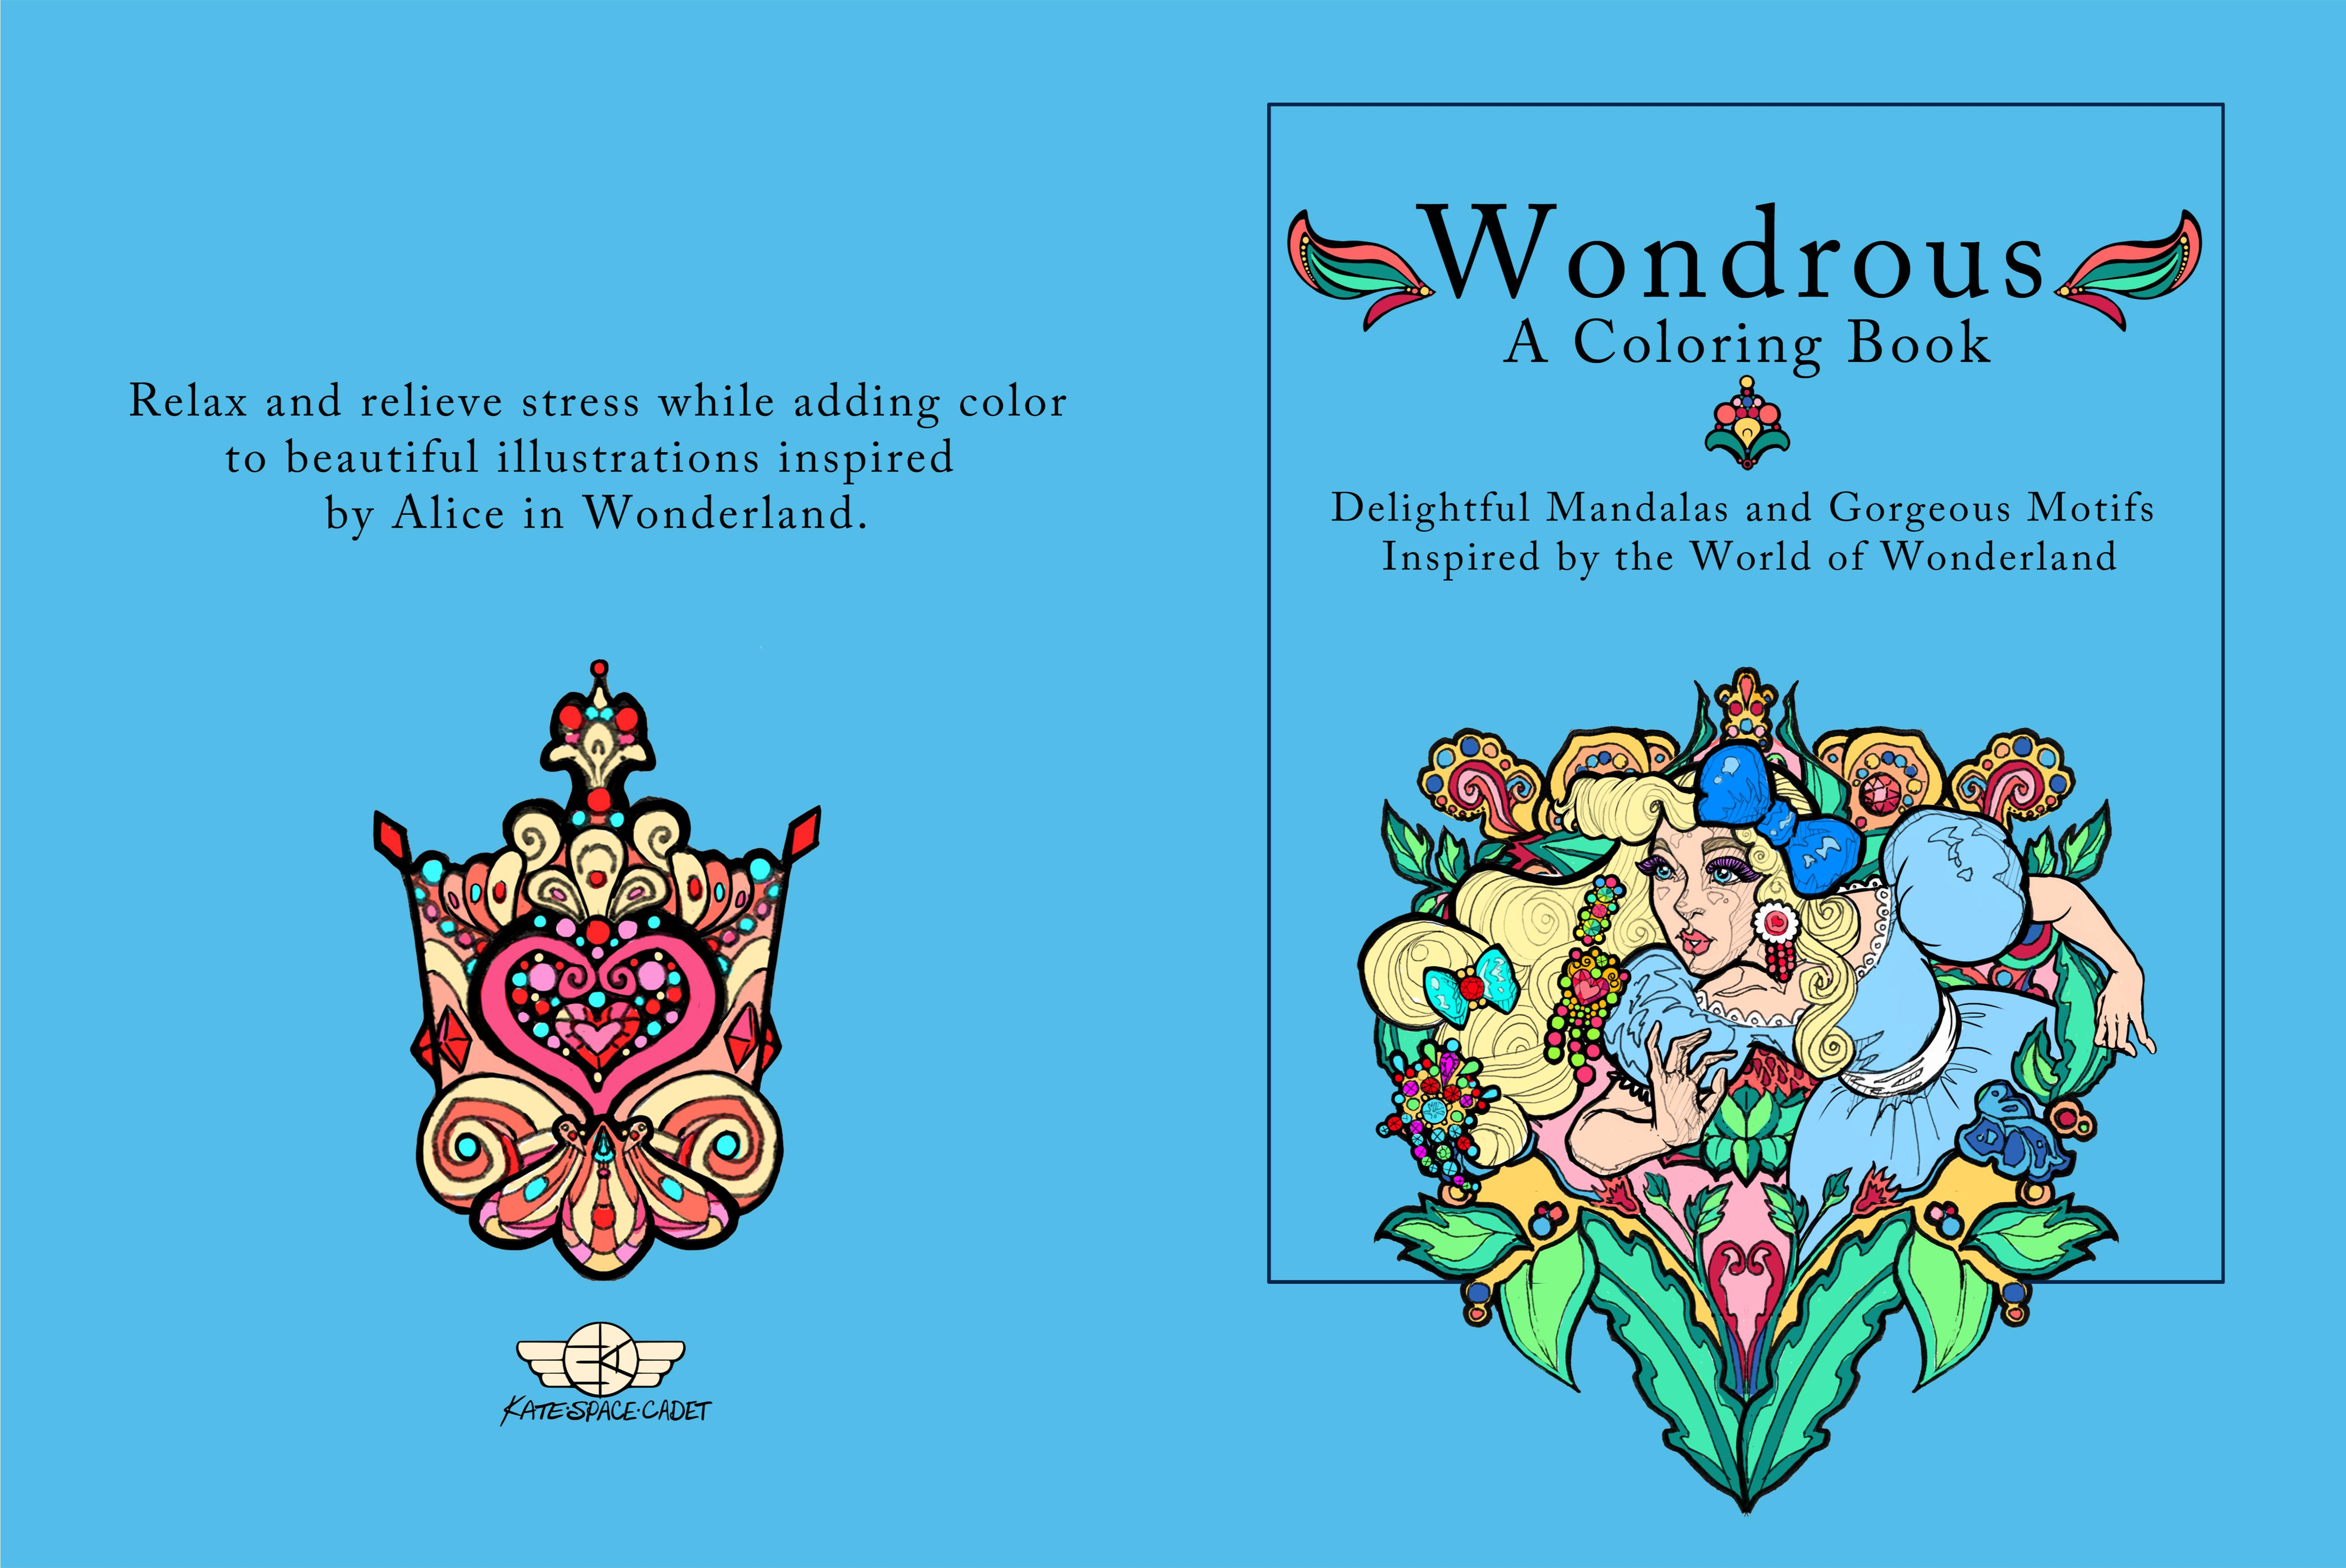 Wondrous: A Coloring Book cover image